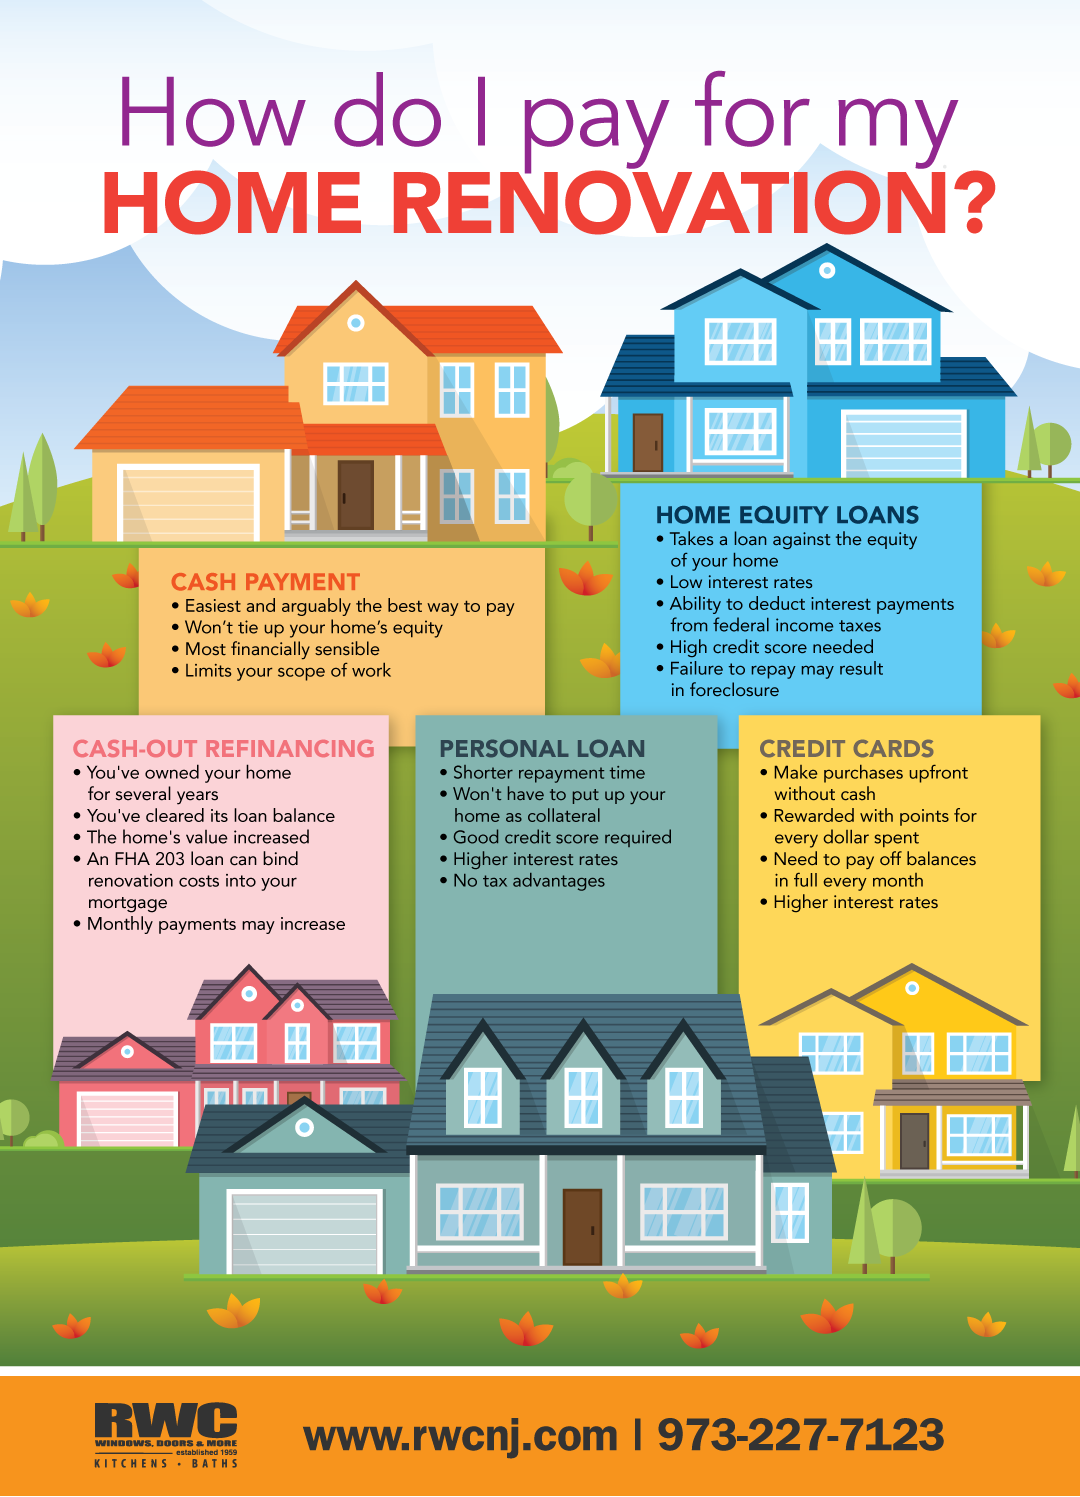 How Do I Pay For Home Renovations Infographic Rwc Home Improvement Loans Home Equity Loan Remodeling Loans